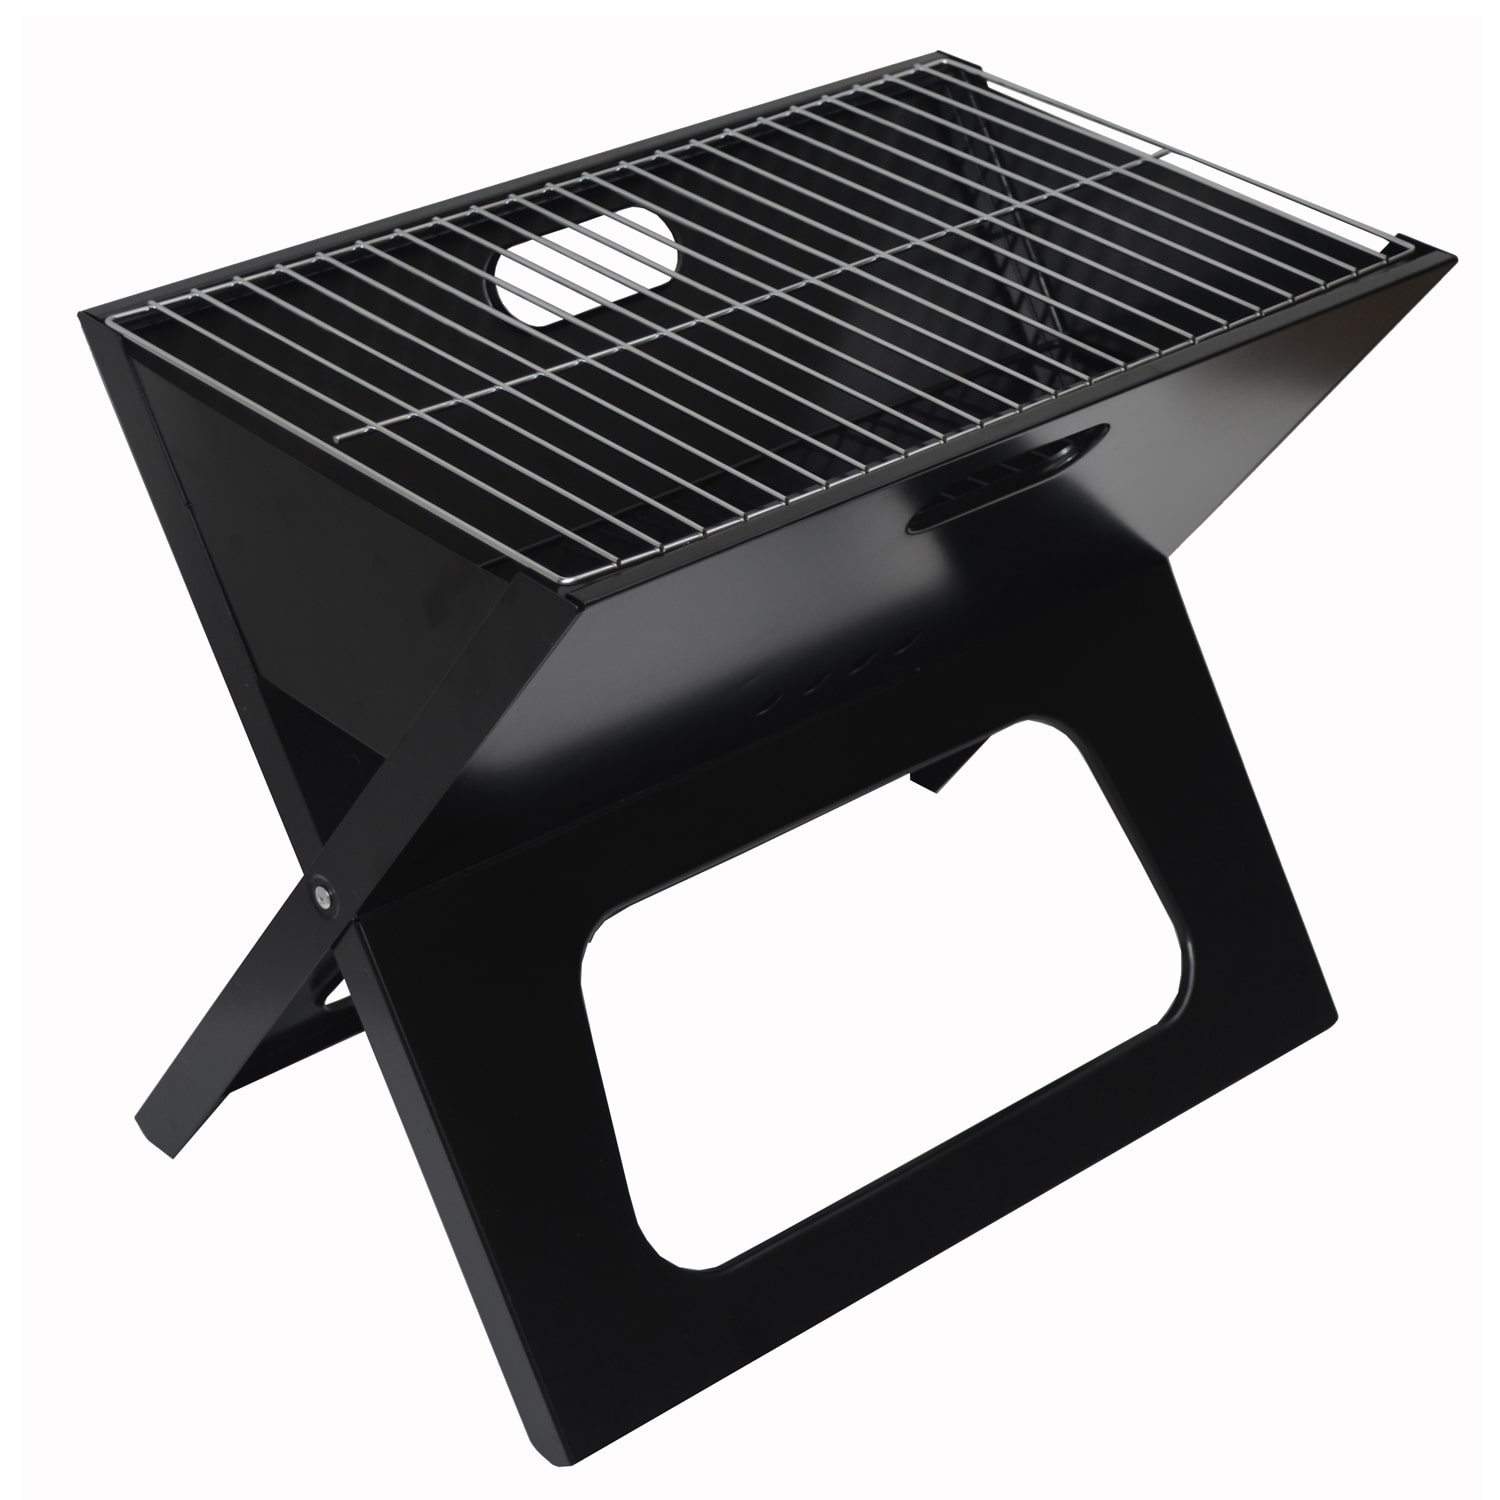 Picnic at Ascot Black Portable Charcoal Grill